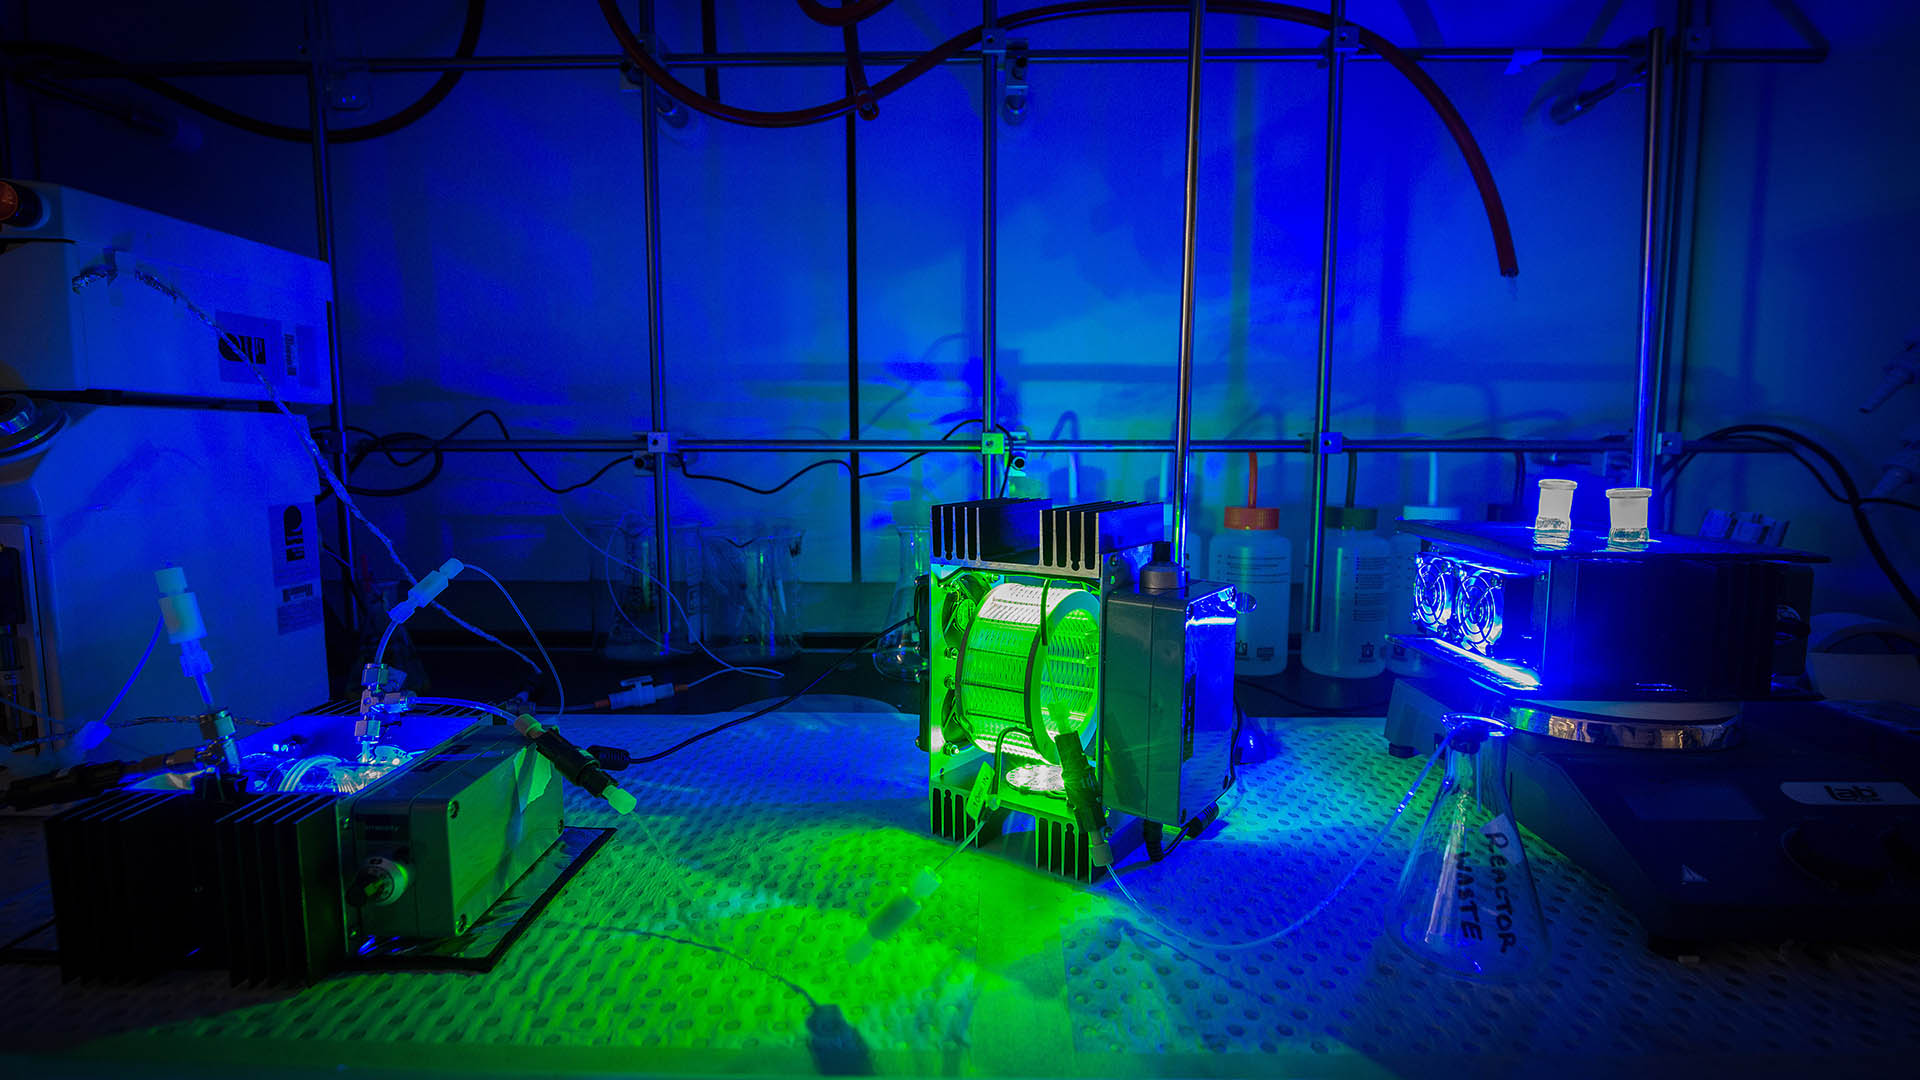 Green and blue lighting on scientific equipment